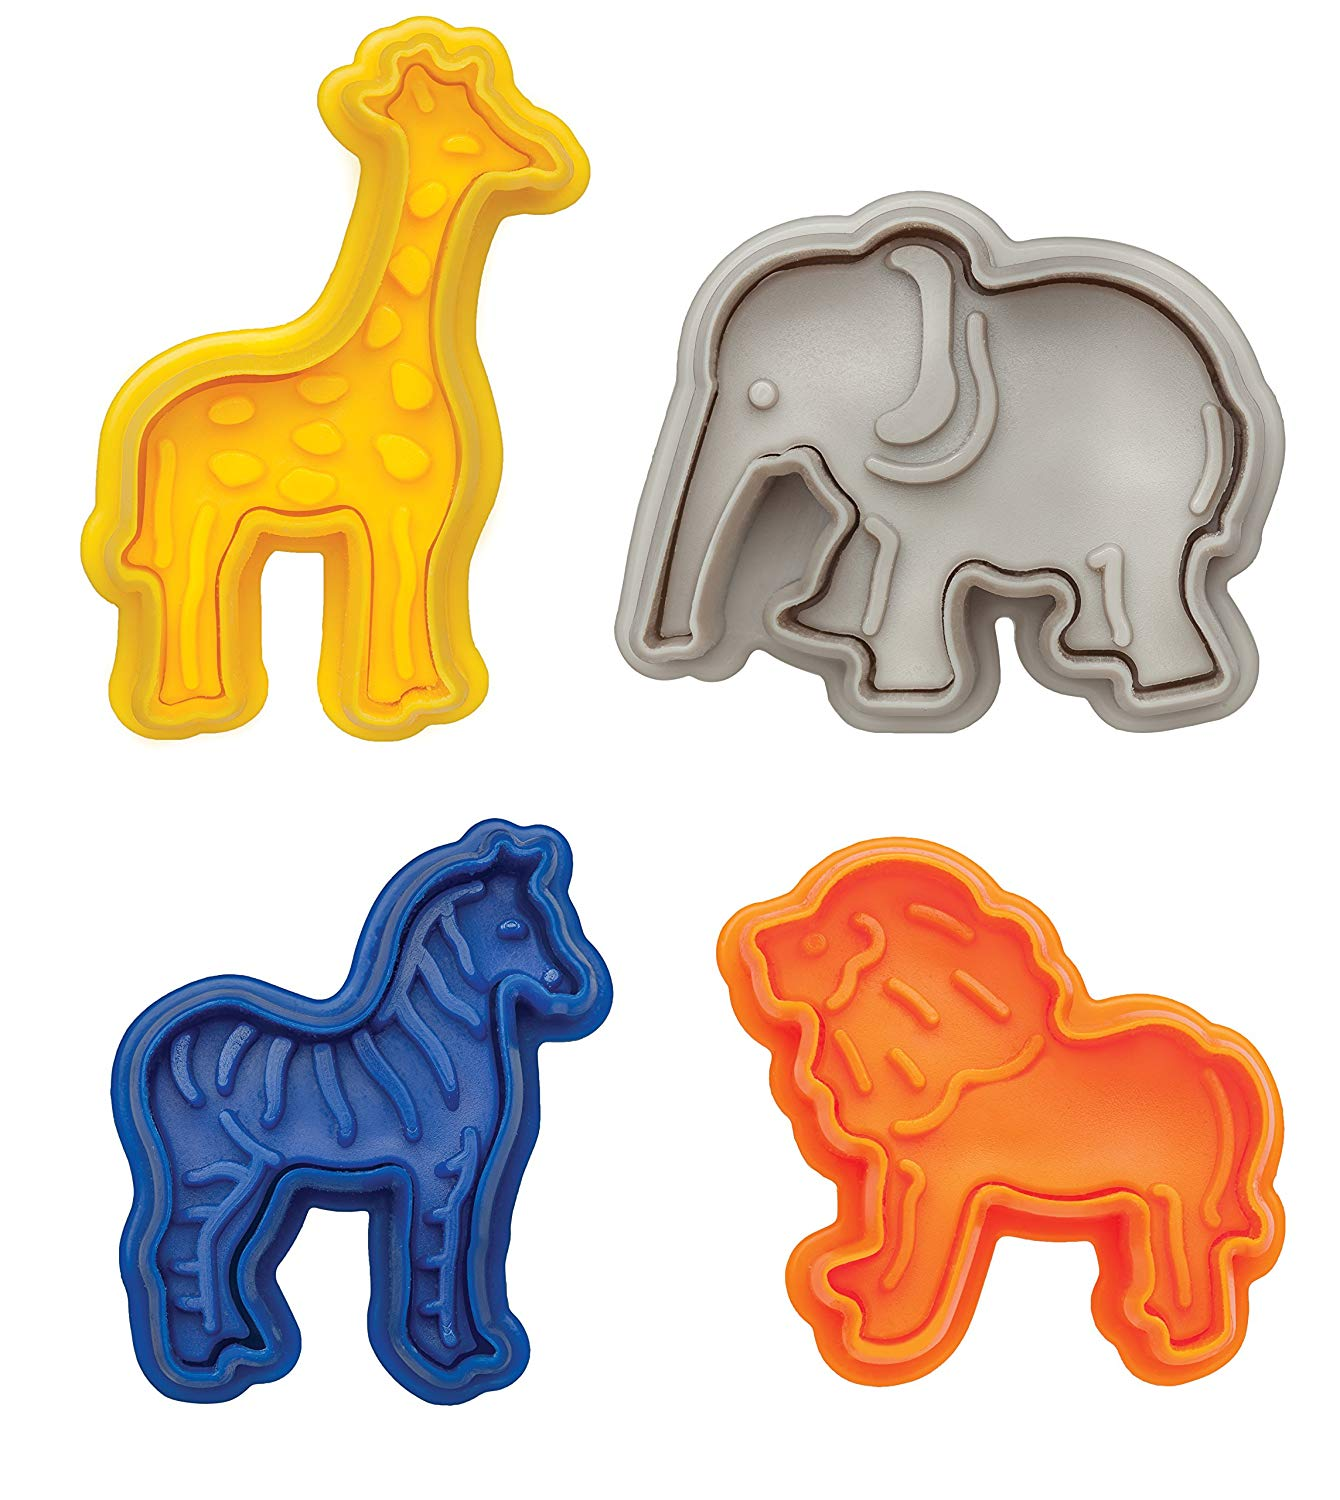 Set of 4 Plastic Animal Shapes Cookie Cutter Mold